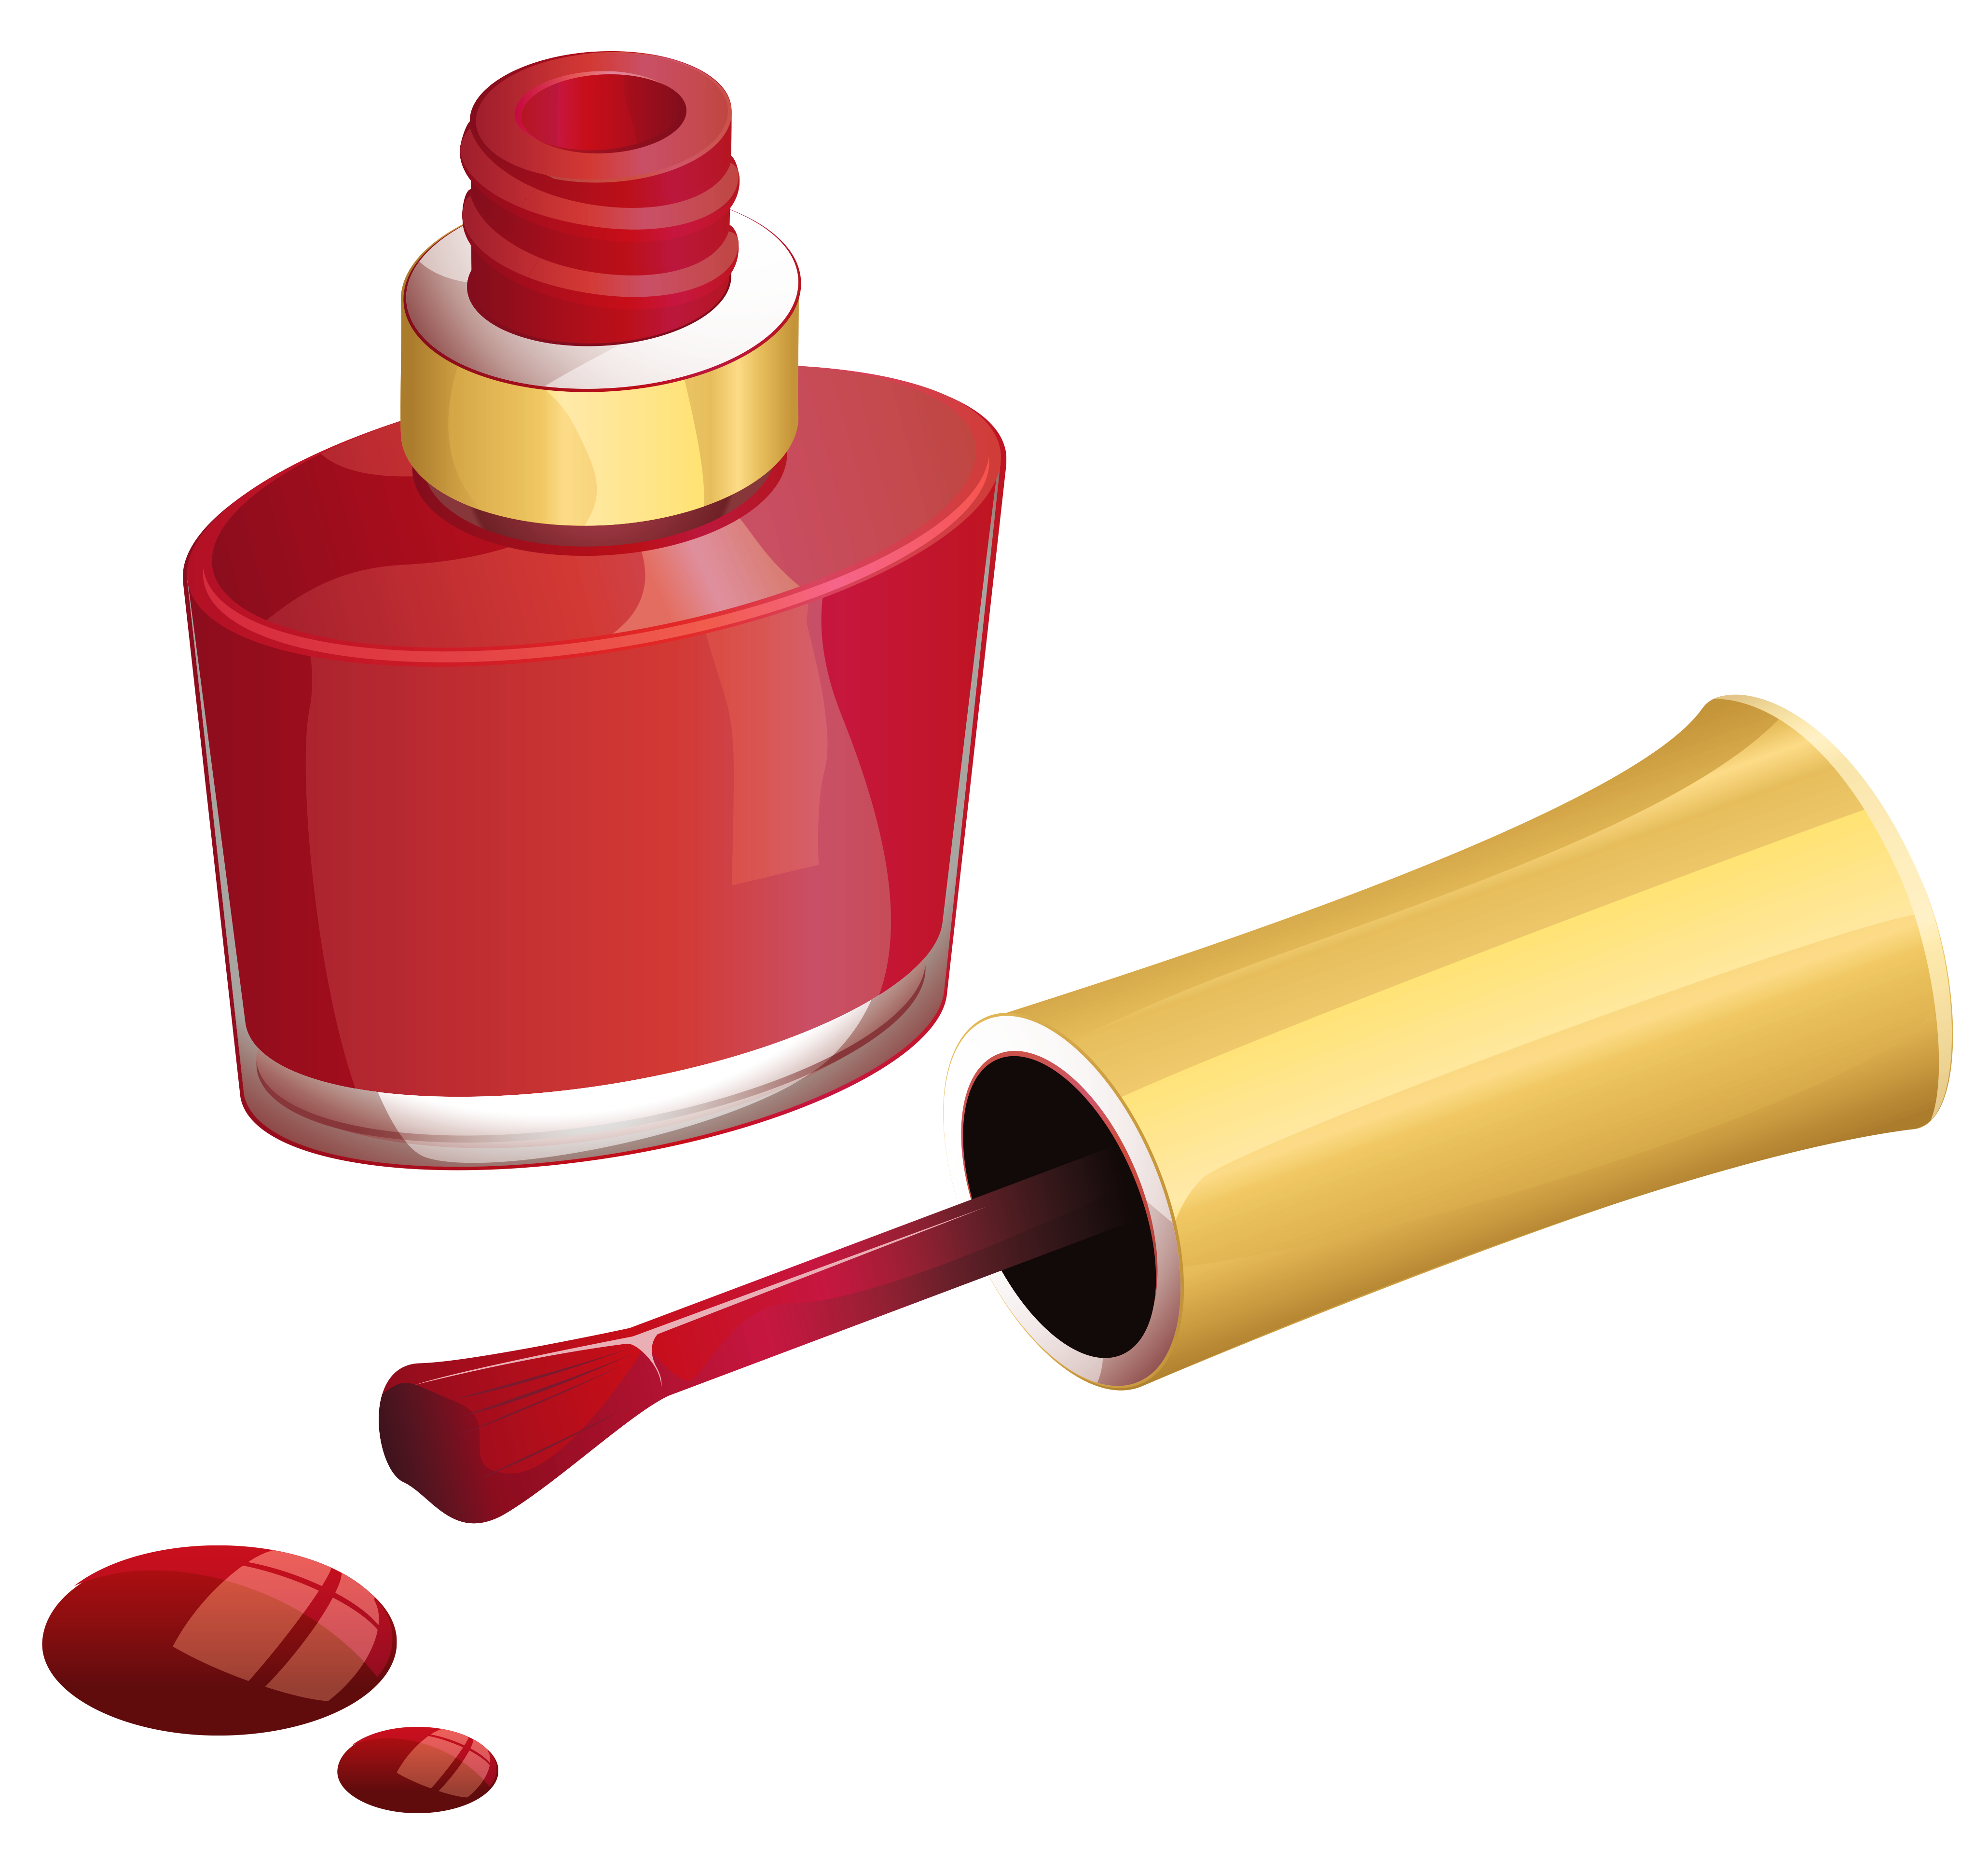 Best Free Nail Polish Red Bottle Png Image